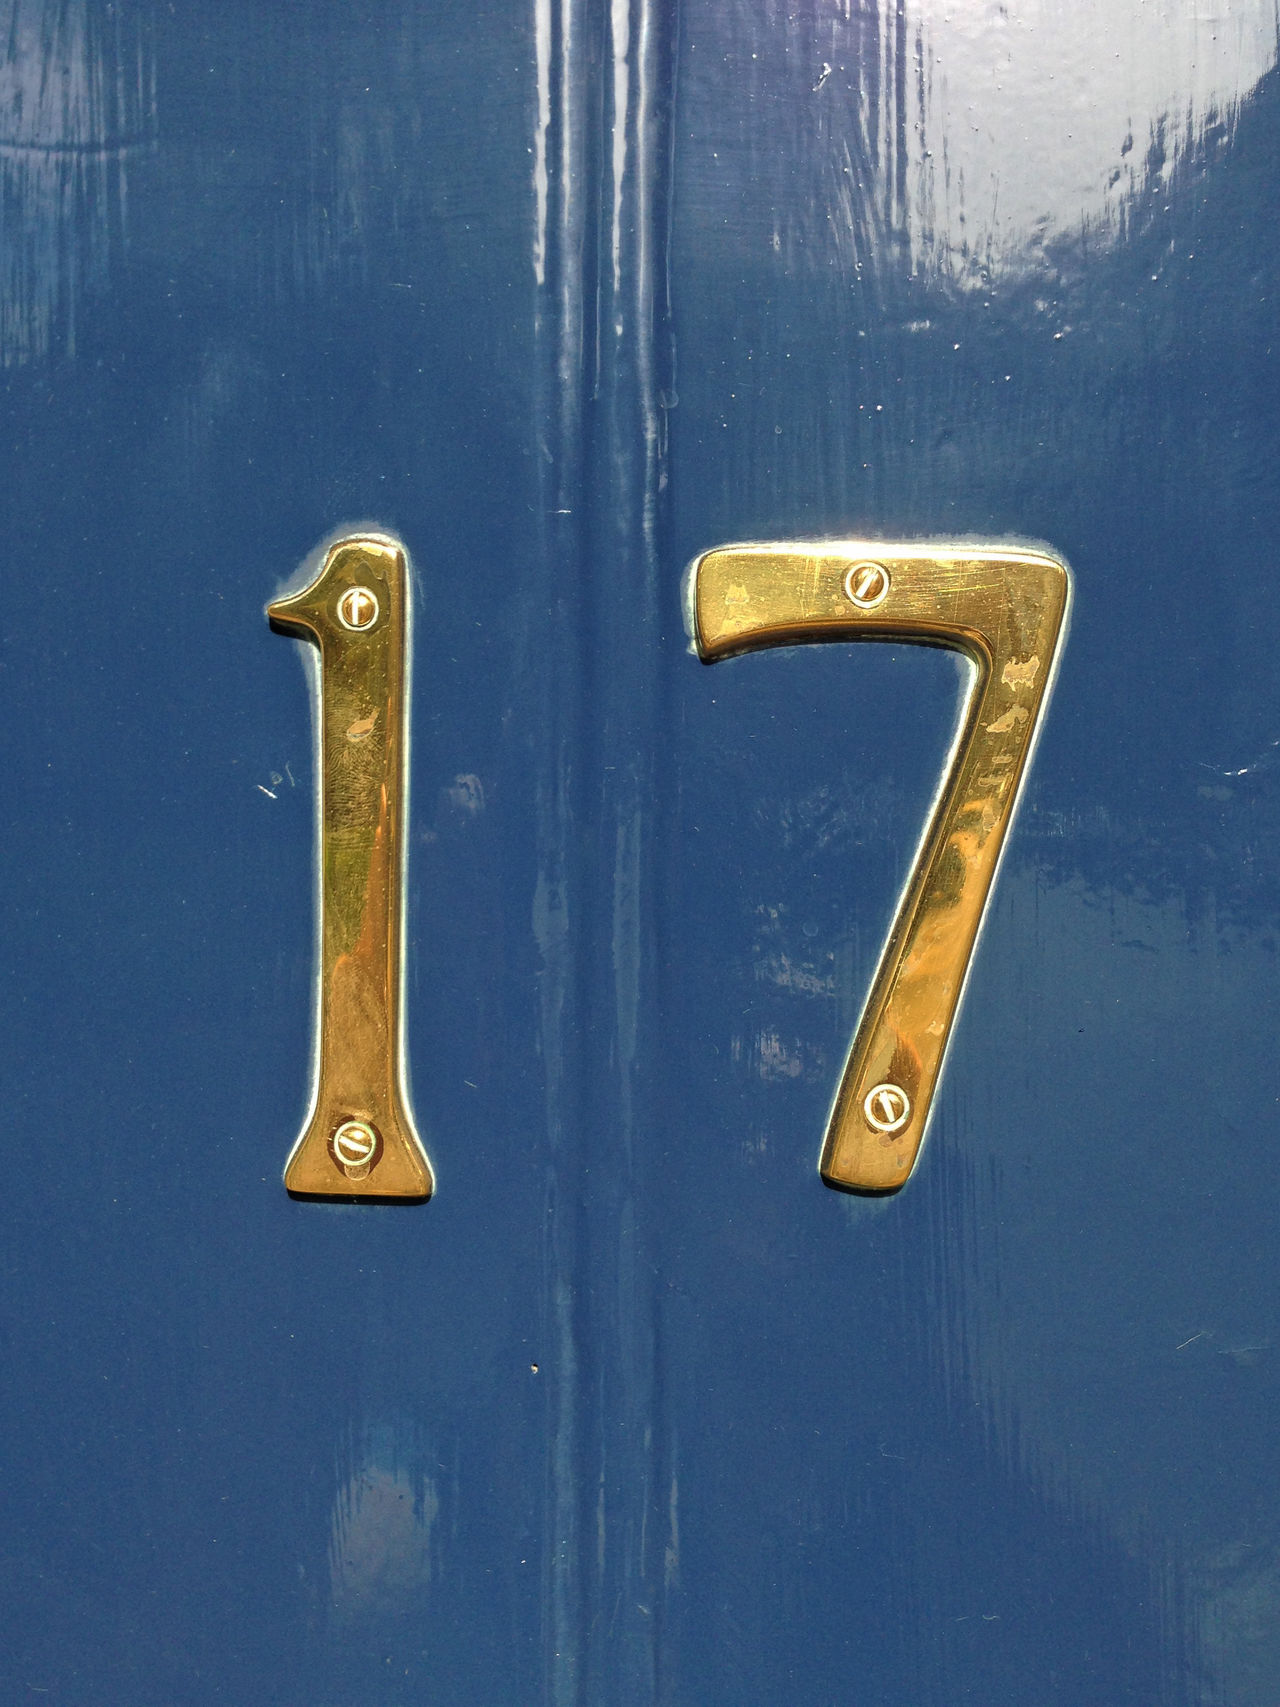 no 17 on a blue door 17 Address Blue Door Blue Paint Close-up Communication Creativity Detail Door Door Number Entrance House Door Metal Metallic No People Number Numbers Numbers Only Single Object Still Life